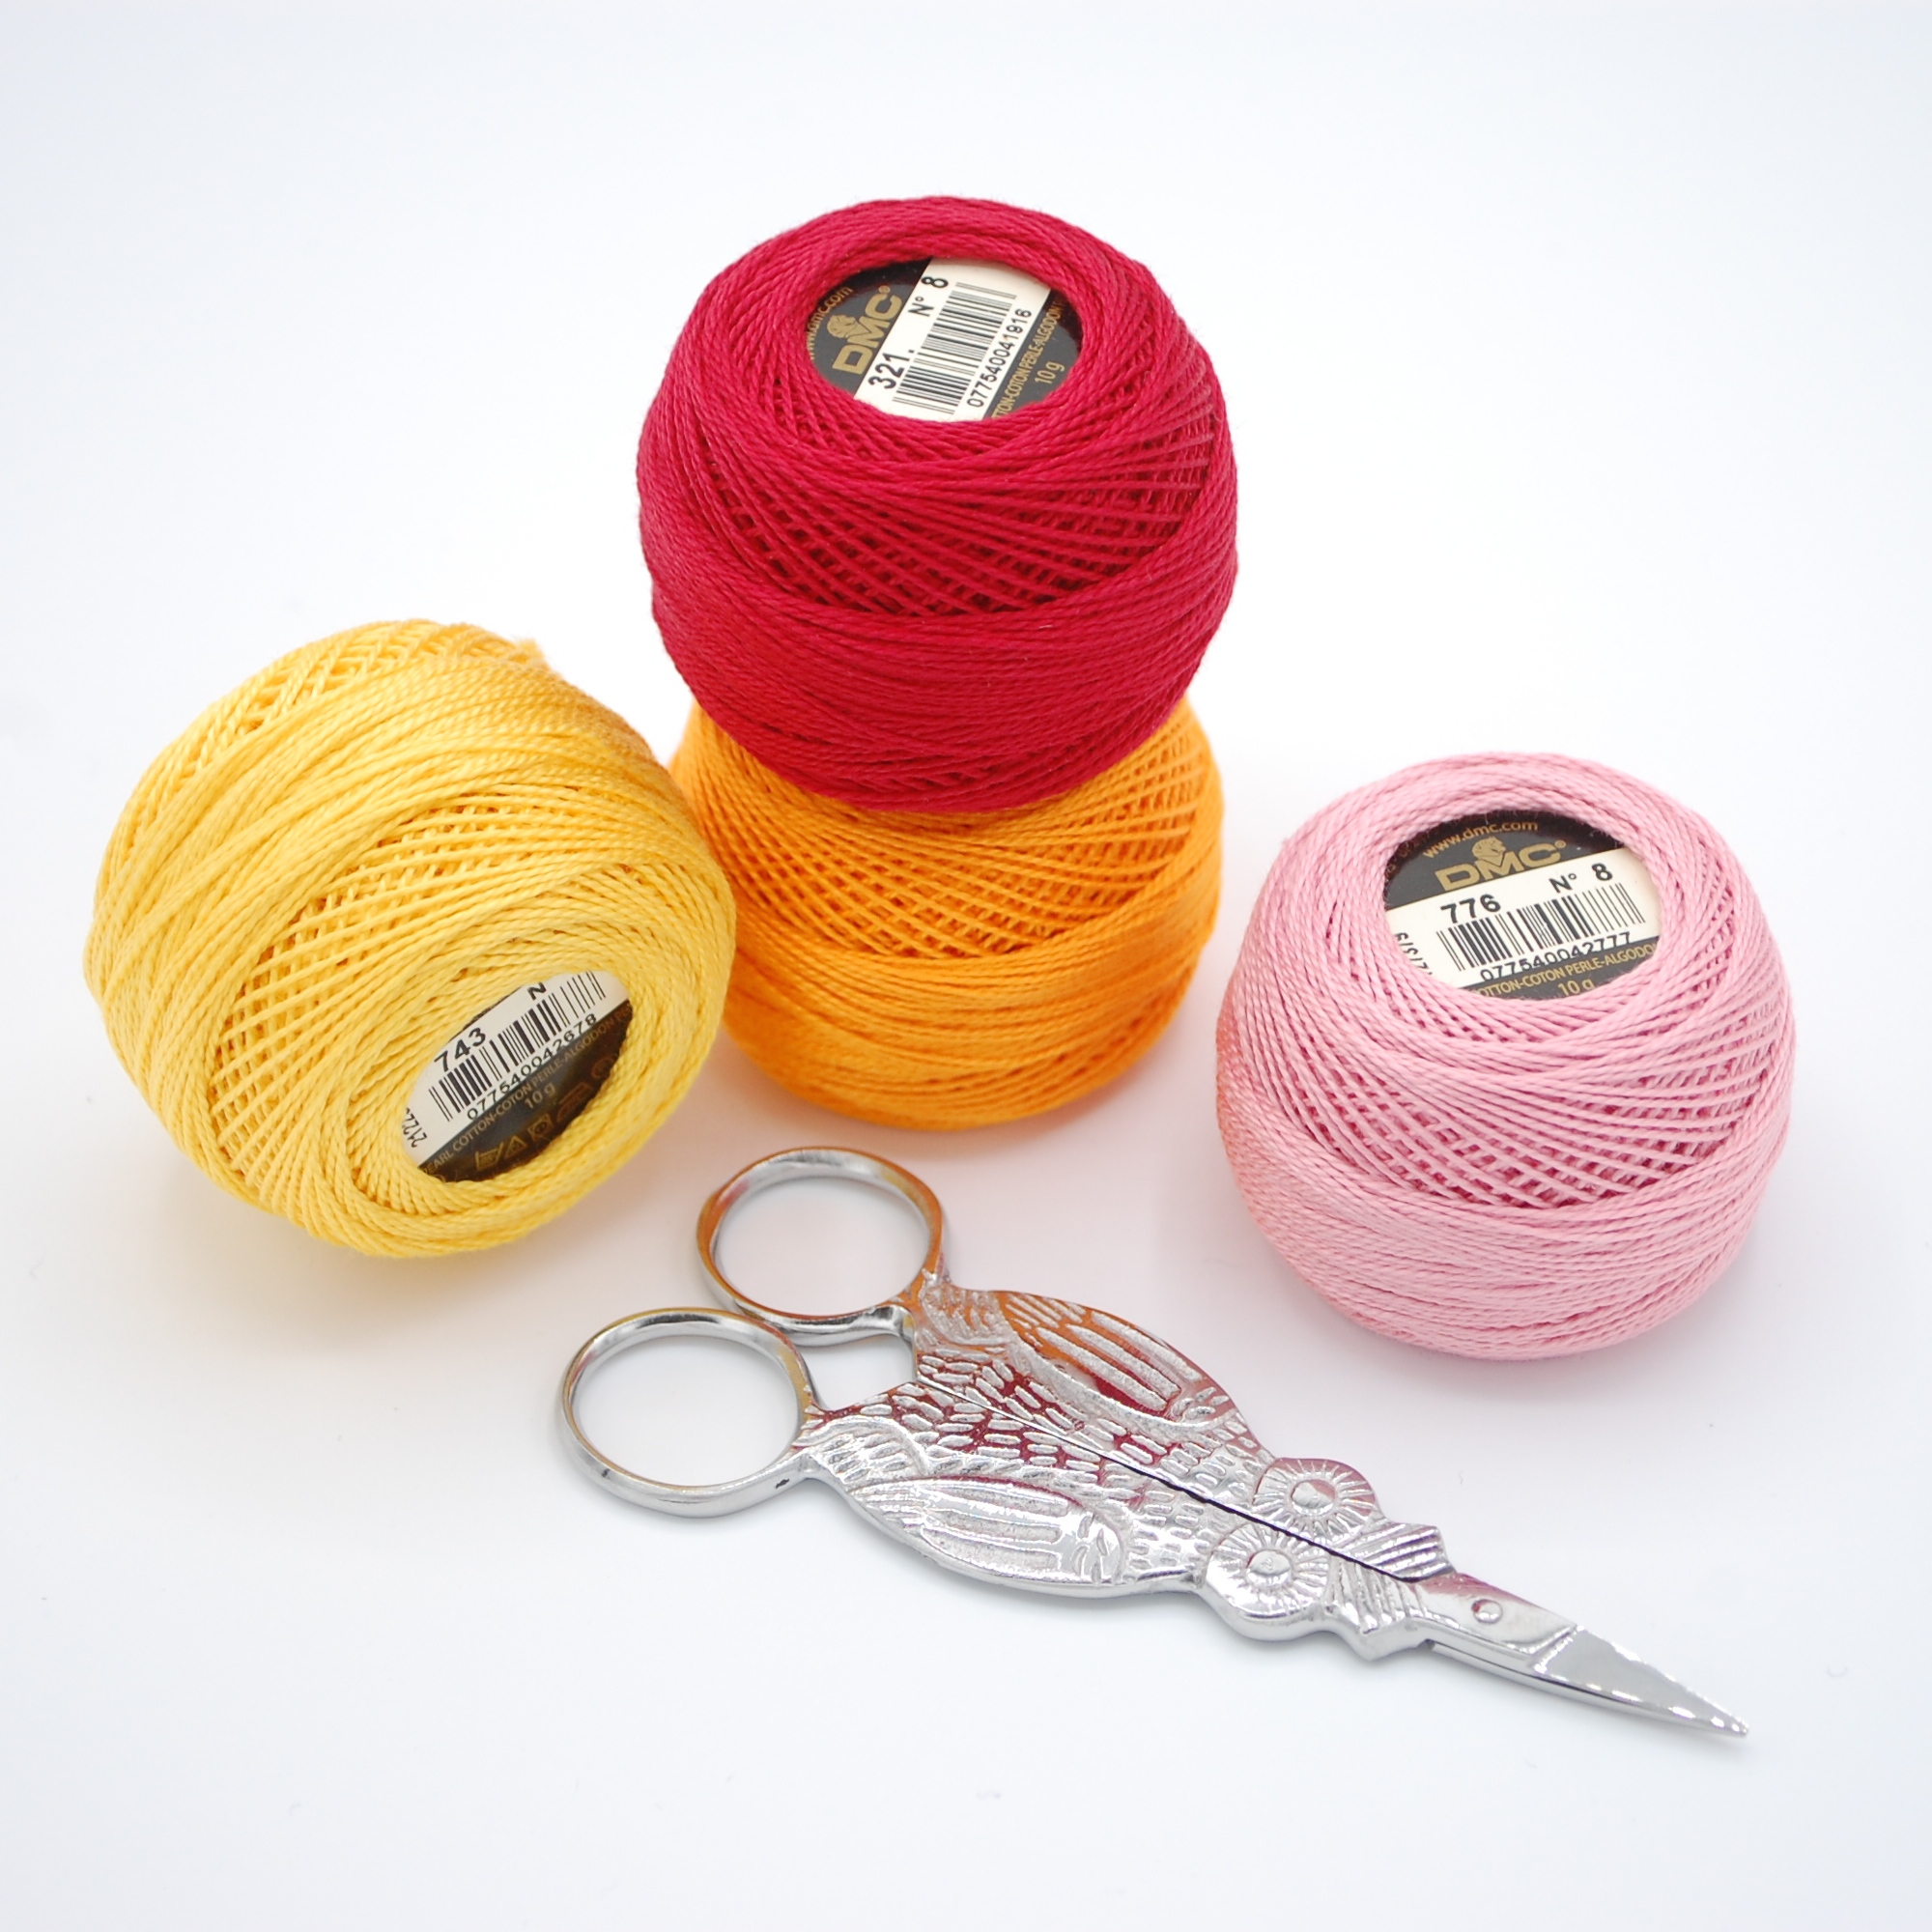 Perle cotton and scissors